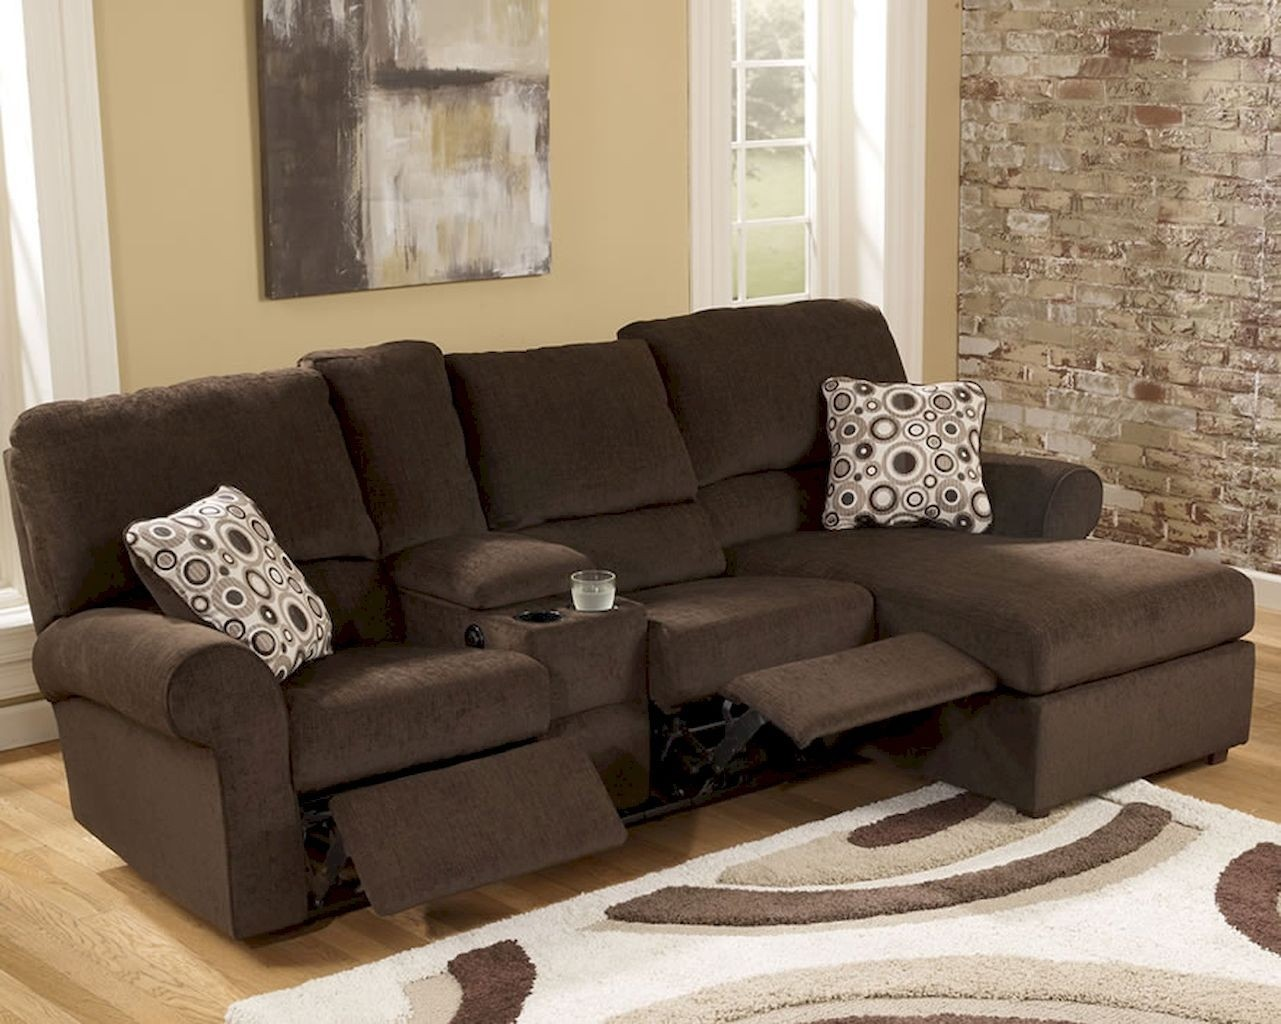 leather sectionals for small living rooms room colours to go with grey sofa sectional recliner ideas on foter spaces